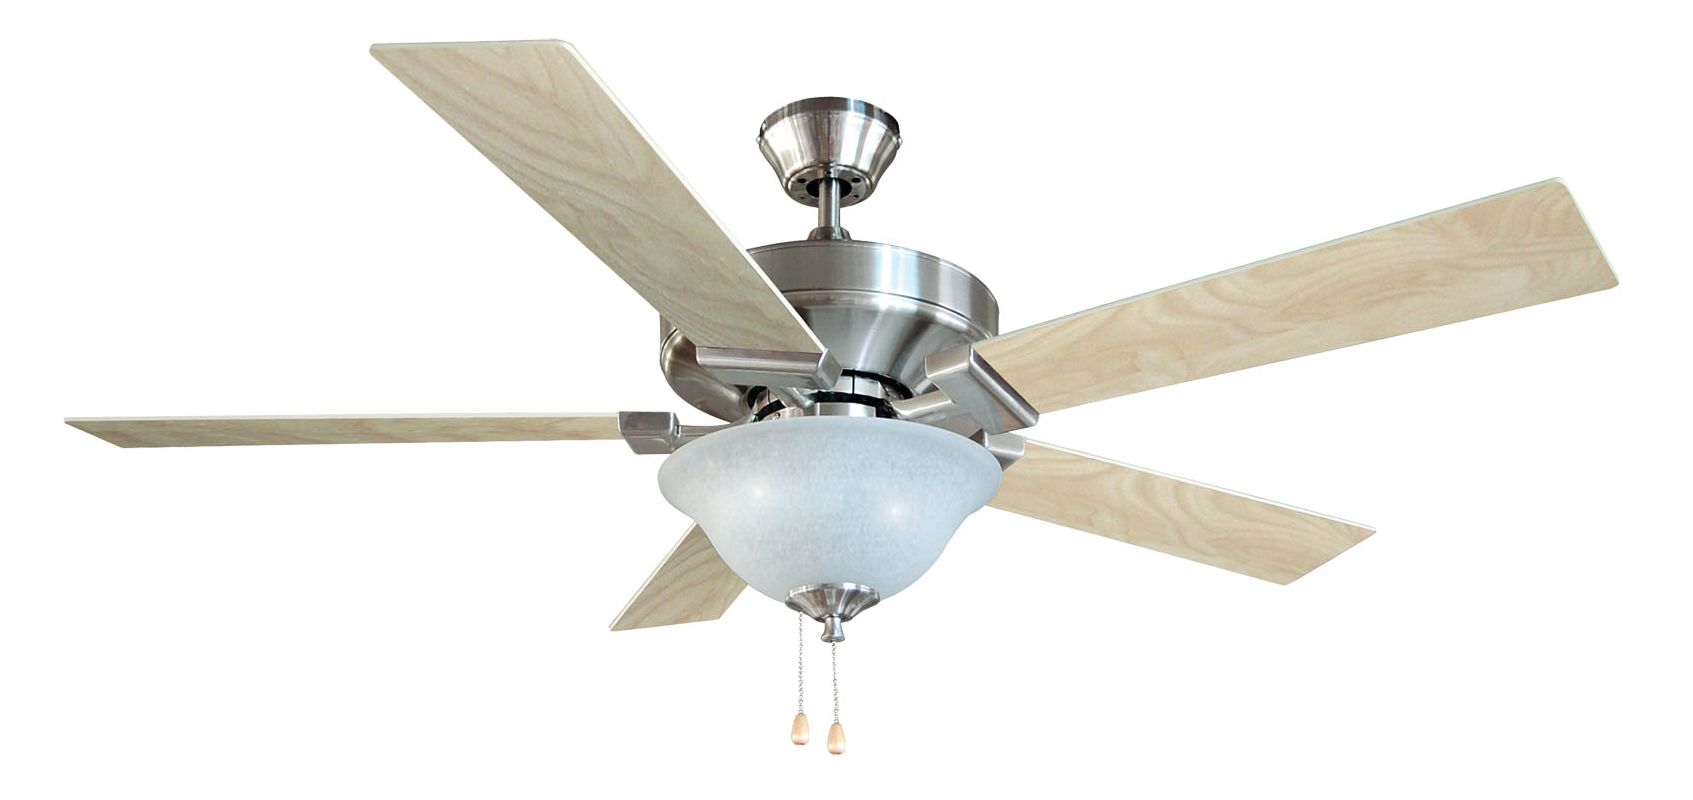 Design House 154070 Satin Nickel Ironwood 52quot Ceiling Fan  : 154070 from www.lightingdirect.com size 1693 x 800 jpeg 53kB